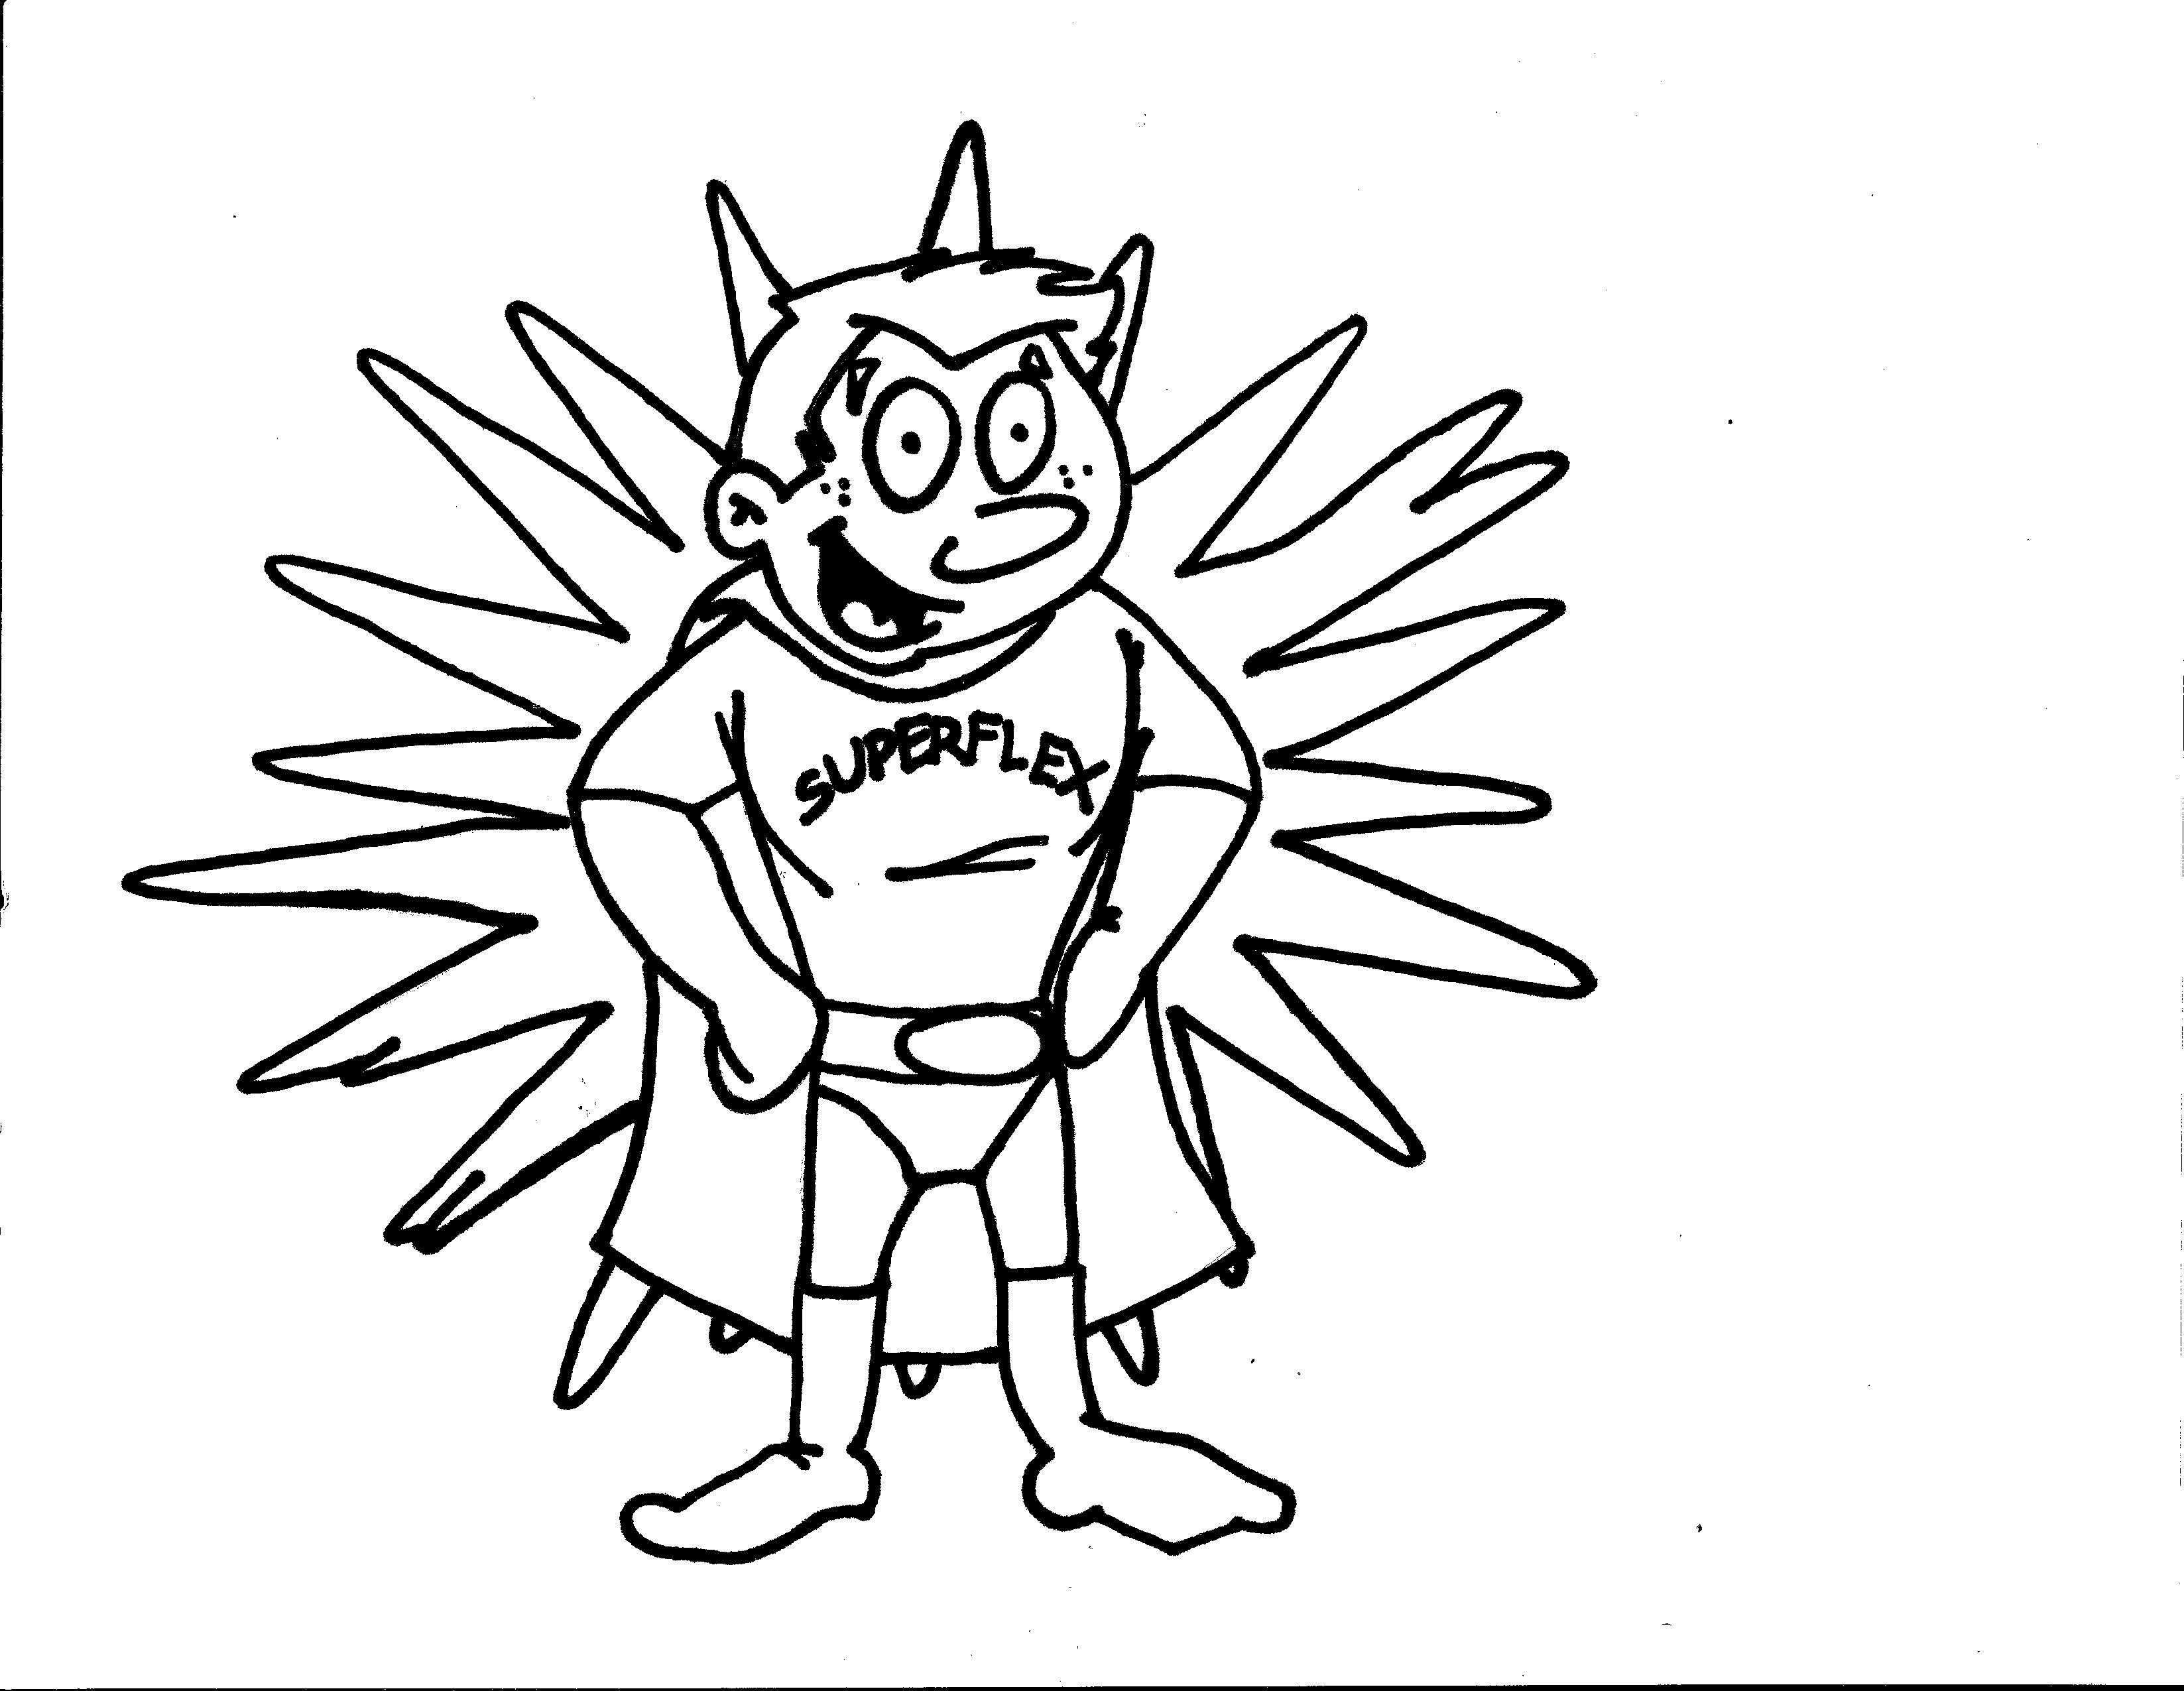 Superflex Coloring Page For Each Character Identify The